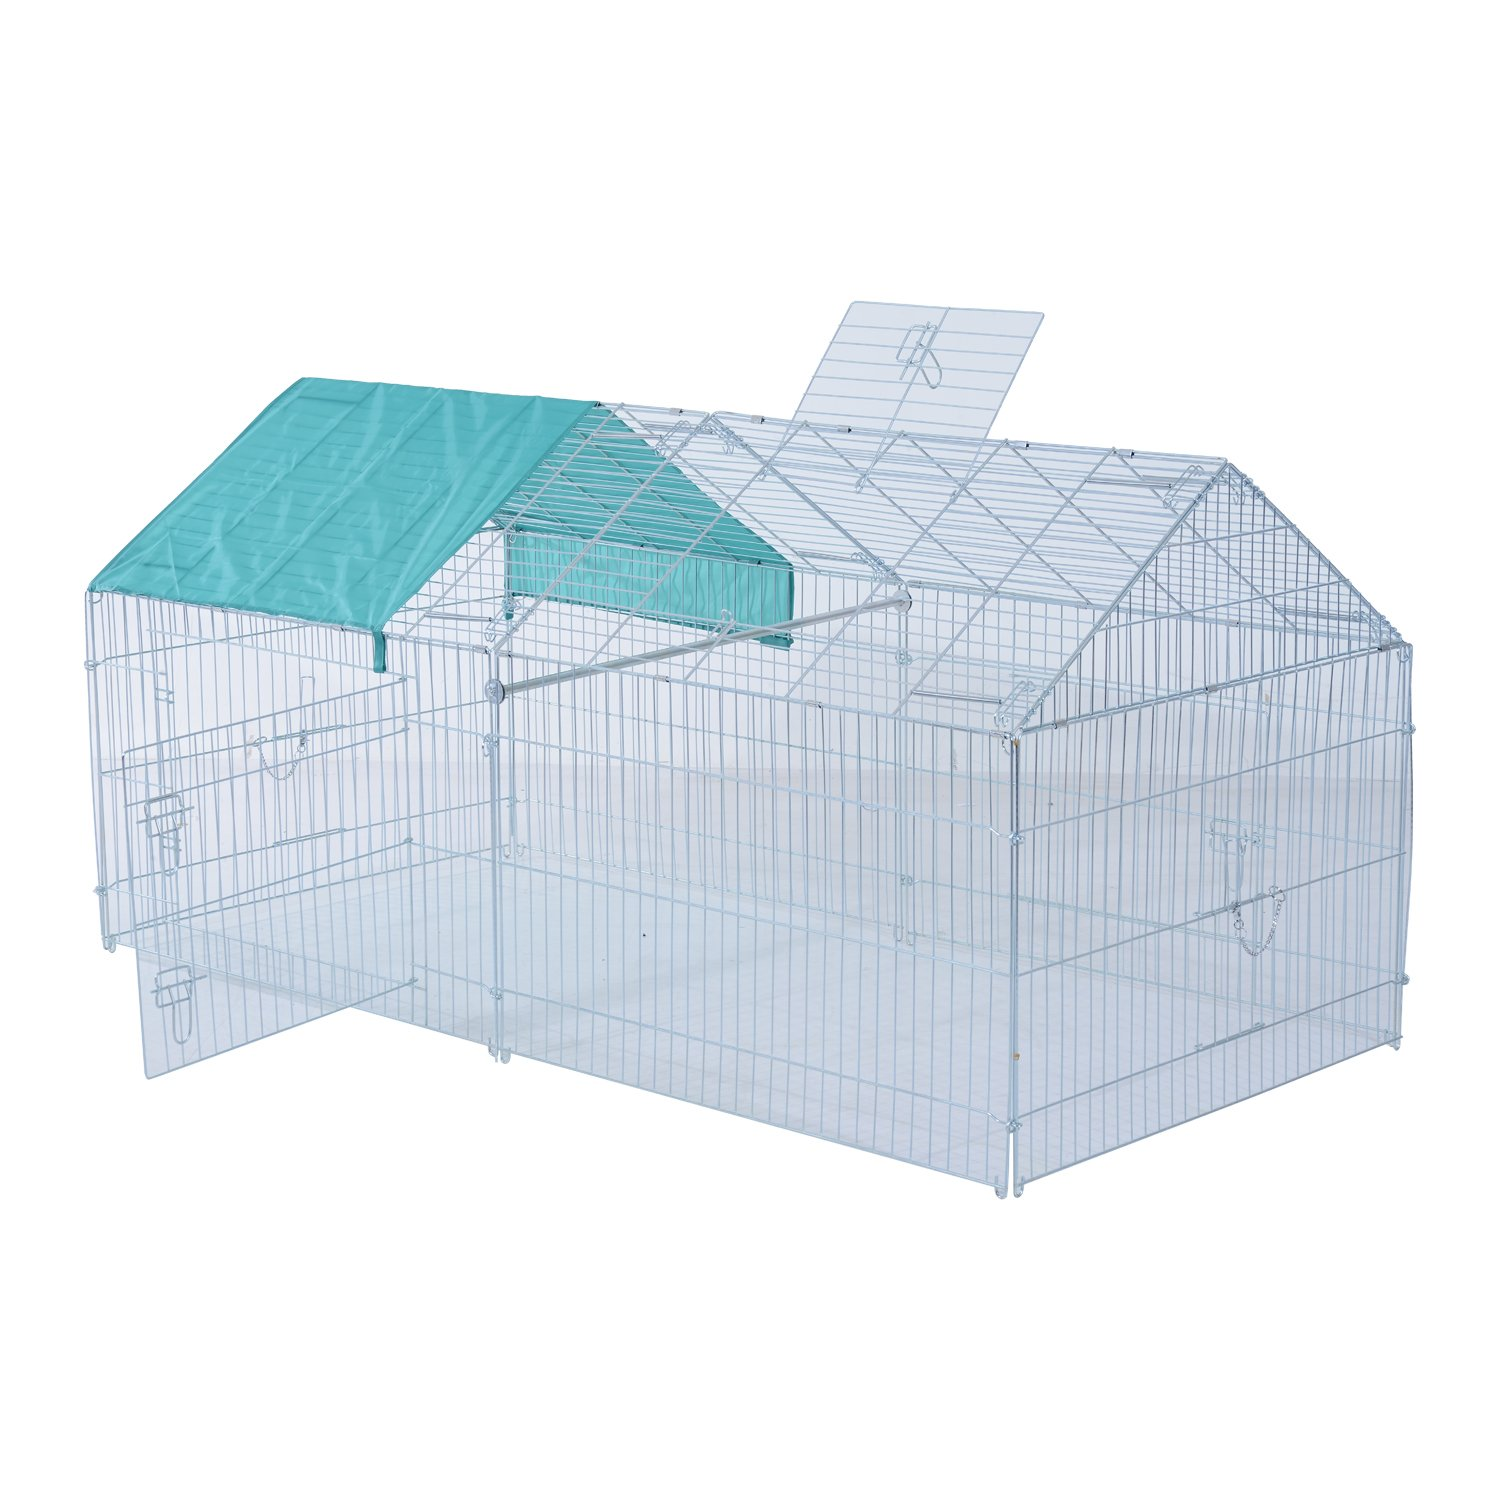 PawHut 80  x 40.5  x 39  Small Animal Enclosure Rabbit cage Dog Pet Metal Net Outdoor Run Play with Cover